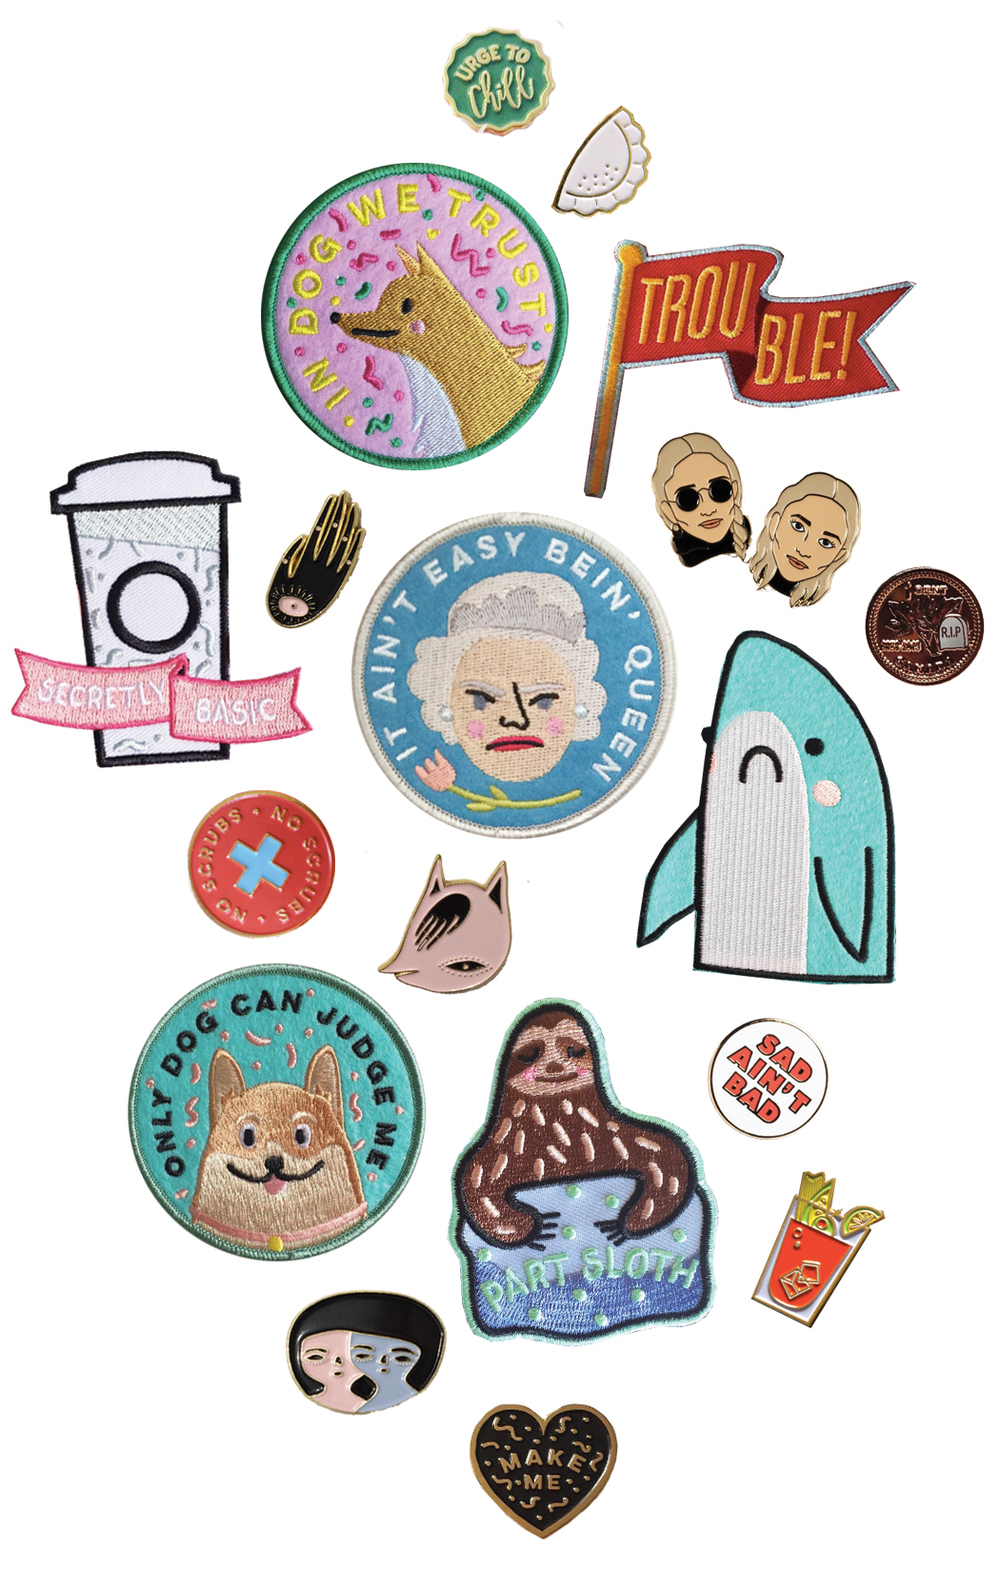 Urge to Chill pin by Kodiak Milly // Perogy pin by Happyland Printshop // Trouble patch by Kodiak Milly // Olsen Twins pins by Drake General Supply // RIP Penny pin by Drake General Supply // It Ain't Easy Bein' Queen patch by Kodiak Milly // Sad Shark patch by Kodiak Milly // Sad Ain't Bad pin by Drake General Supply // Caesar Freak pin by Happyland Printshop // Part Sloth patch by Kodiak Milly // Make Me pin by Kodiak Milly // Two Faces pin by Matea Radic for Margot + Maude // Only Dog Can Judge Me patch by Kodiak Milly // Pink Monster pin by Matea Radic for Margot + Maude // No Scrubs pin by Kodiak Milly // Secretly Basic patch by Kodiak Milly // Evil Eye Hand pin by Matea Radic for Margot + Maude // In Dog We Trust patch by Kodiak Milly